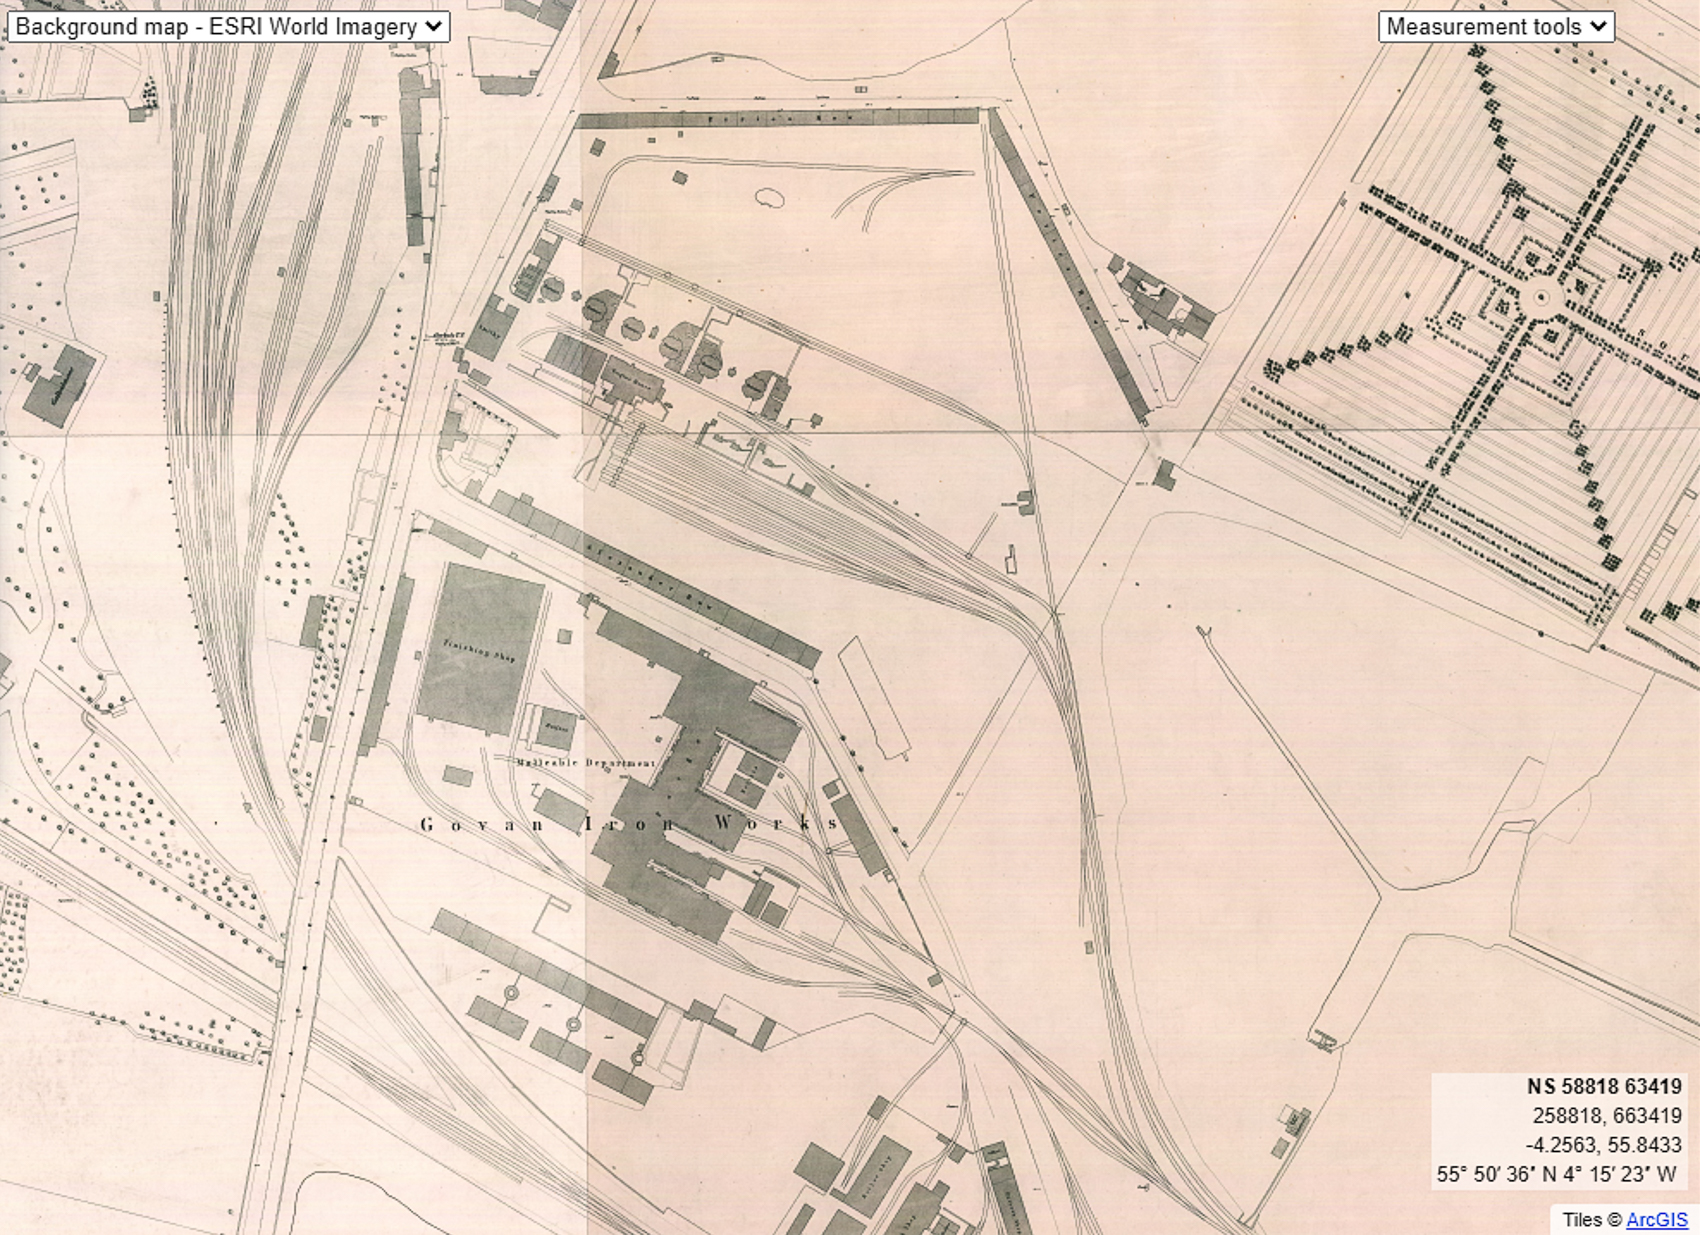 Govan Iron Works from the 1st OS map, 1857. The pig iron works is to the north with the newer malleable iron department to its south. The Southern Necropolis is at top-right.